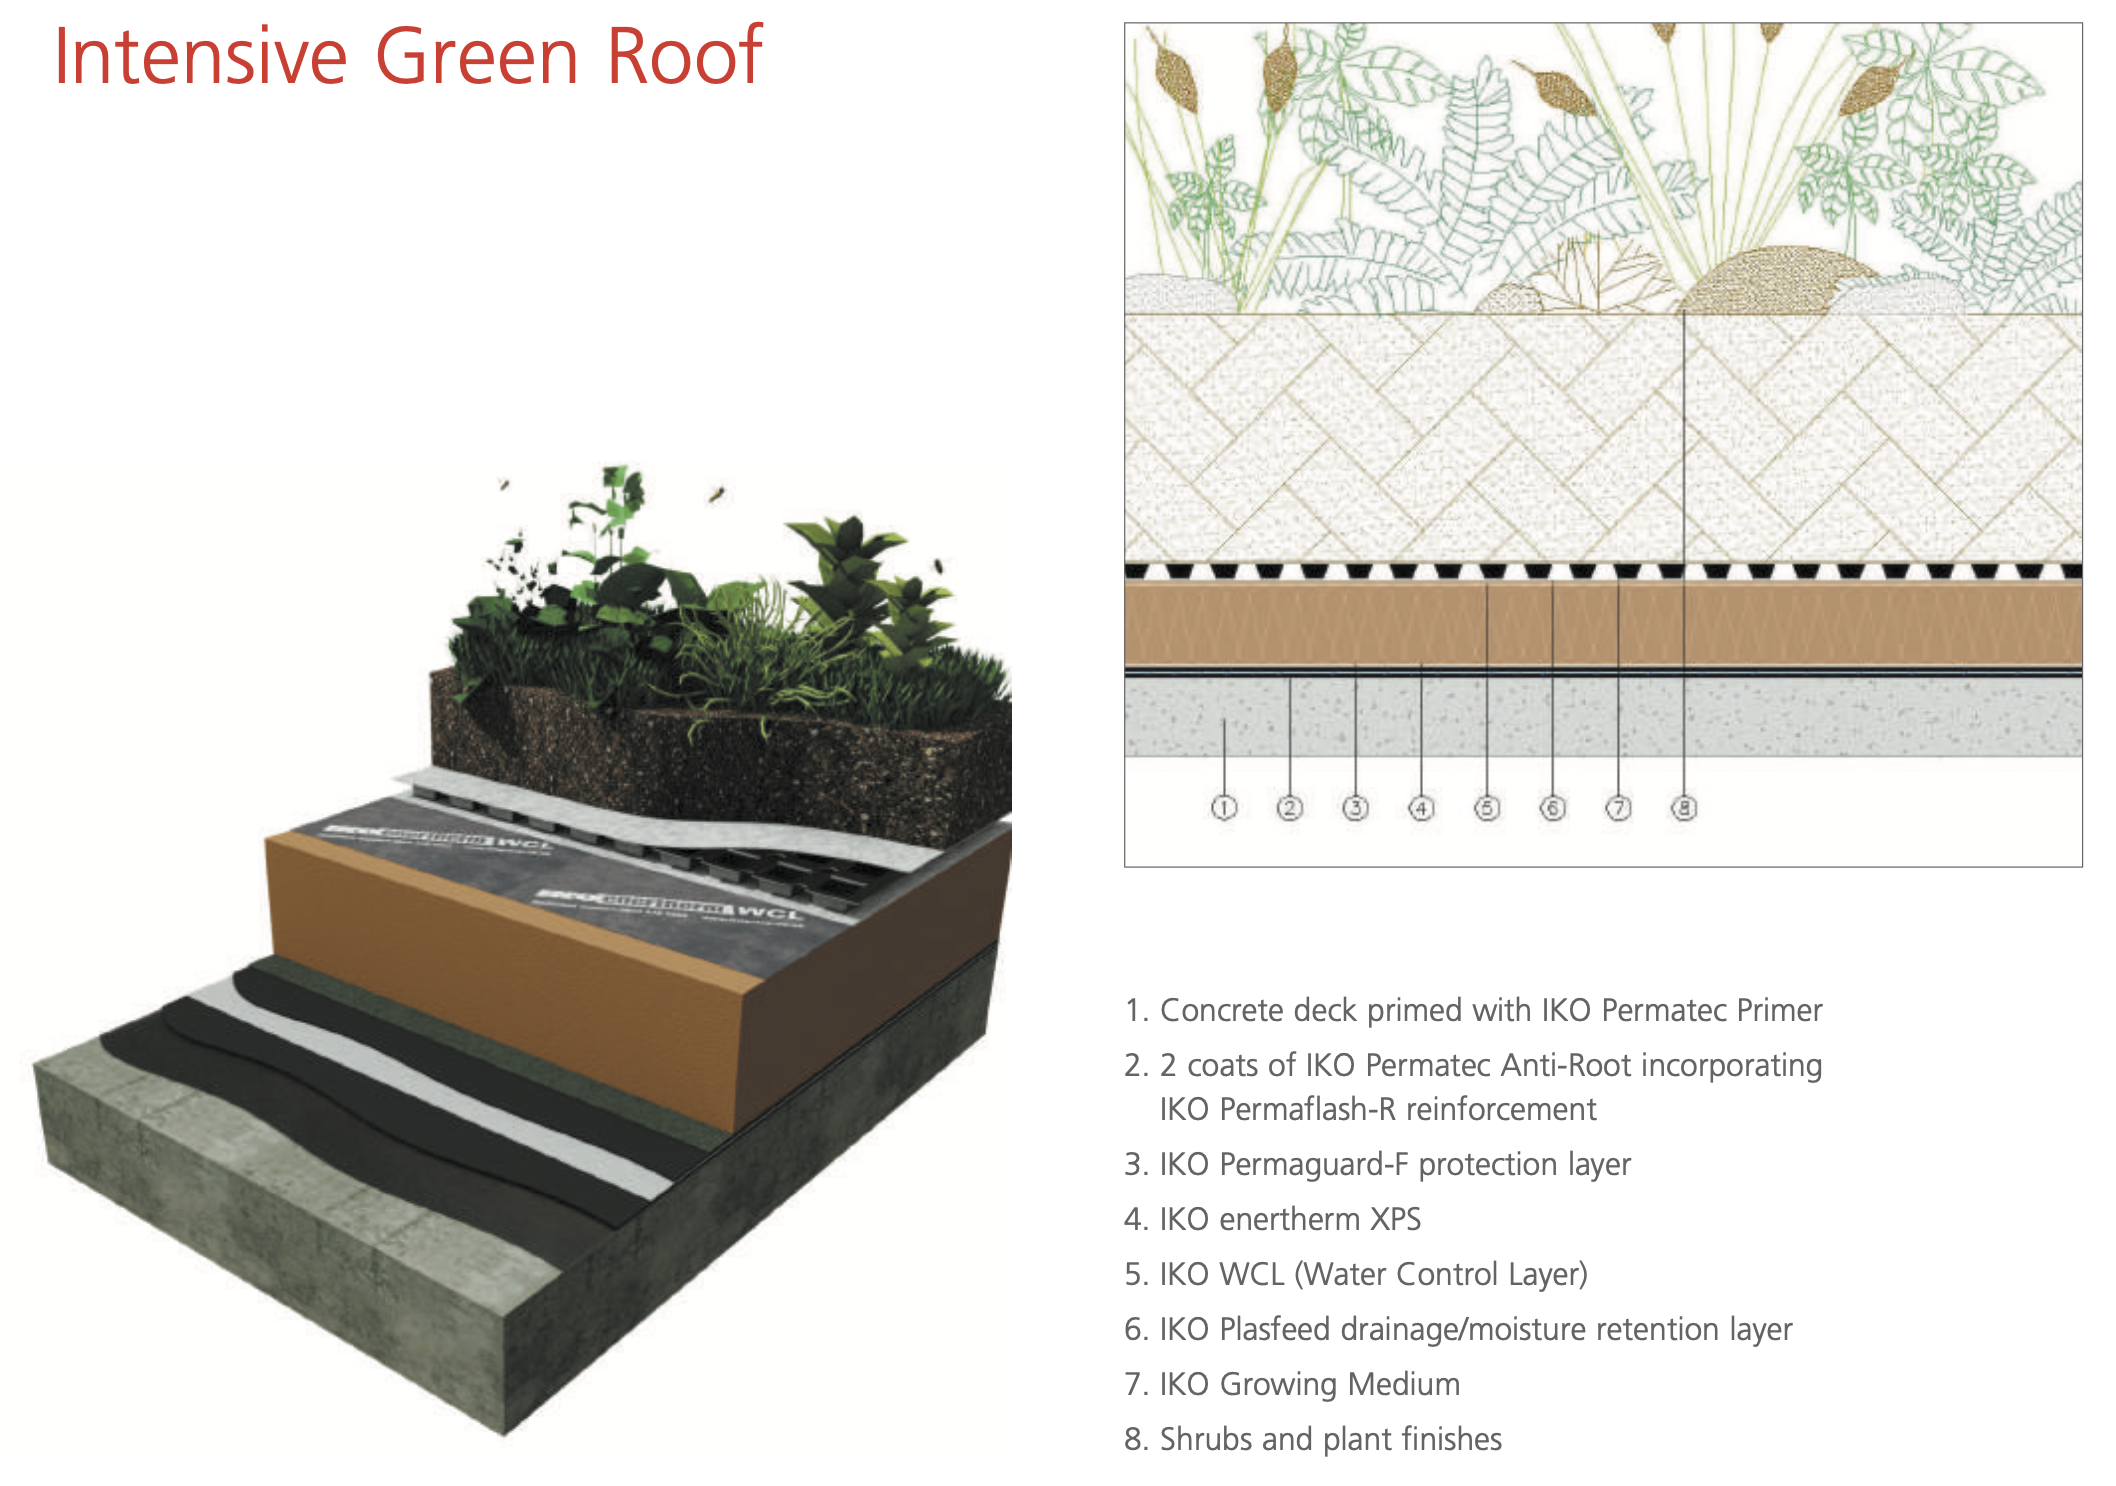 Intensive Green Roof with Hot Melt Roofing